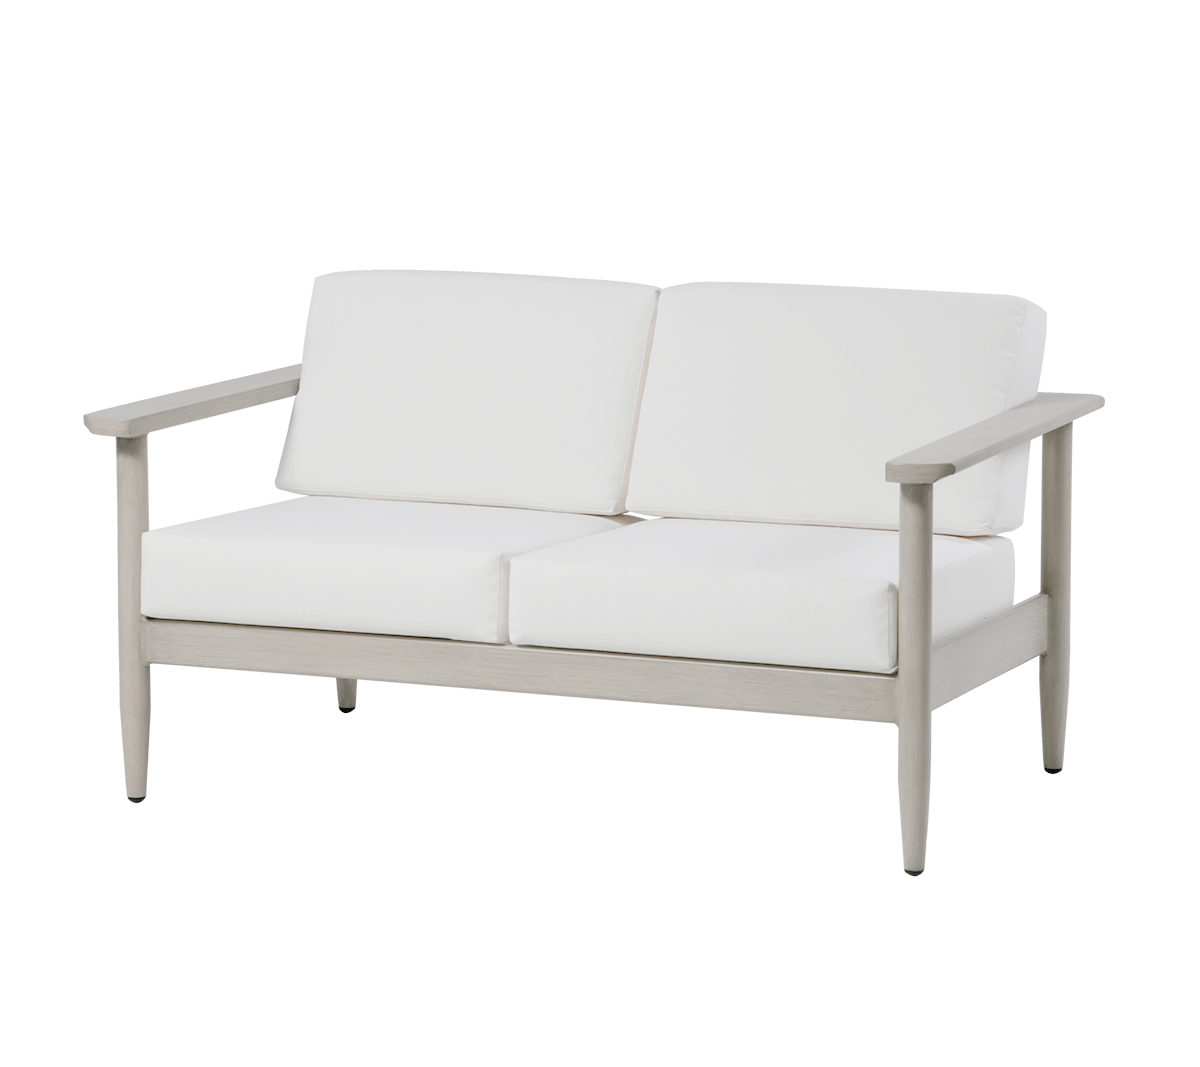 Polanco love seat | Patio Bay